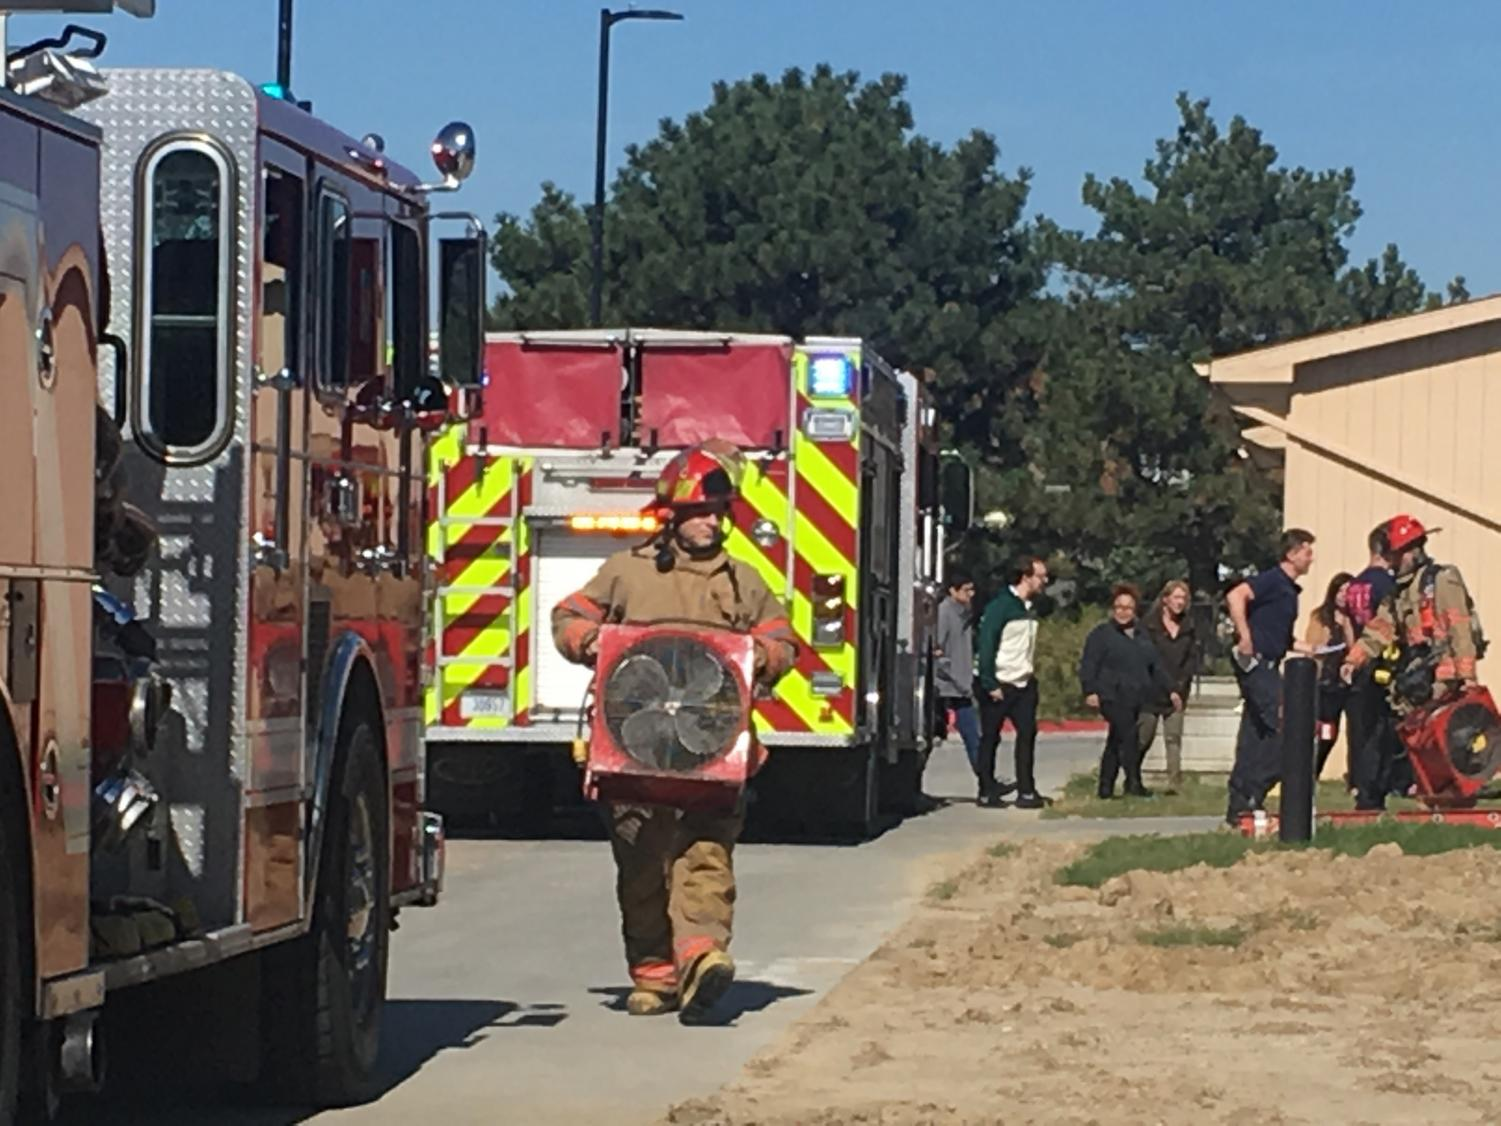 Bringing in fans, firefighters prepare to air out the burning plastic smell in the school caused by the cell phone that ignited.